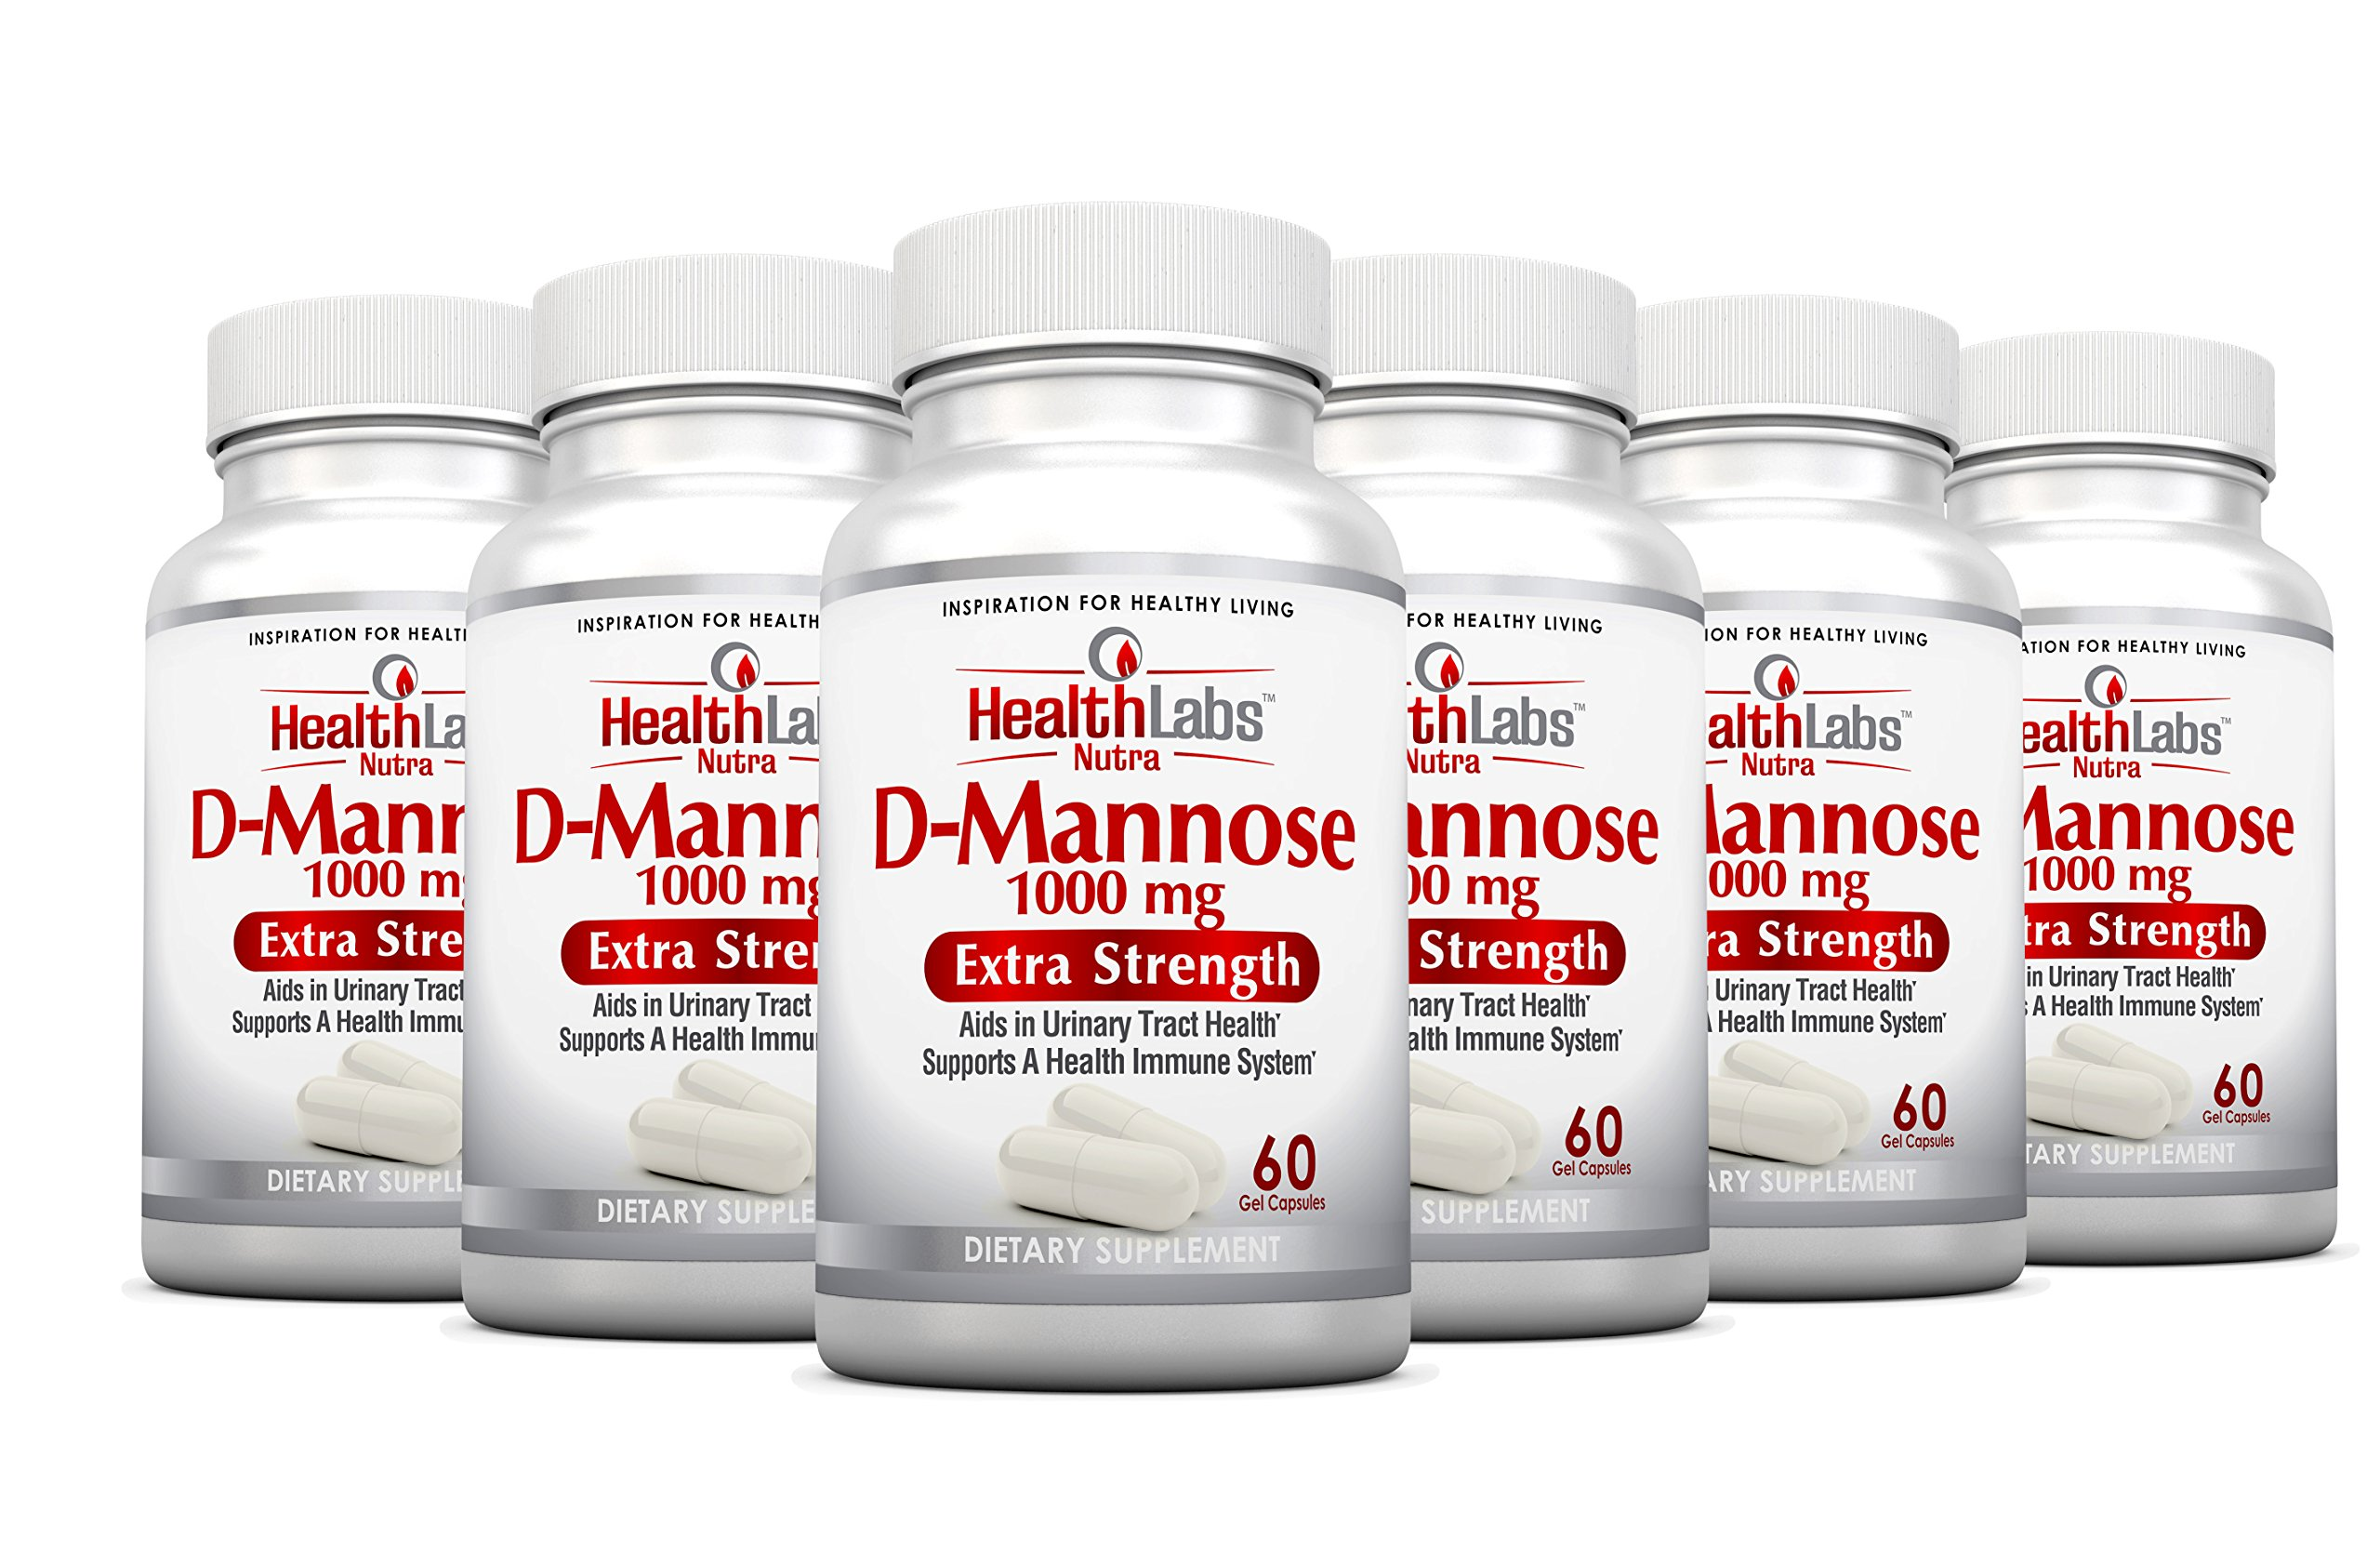 Health Labs Nutra D-Mannose 6-Month Supply 1,000mg – Fight Urinary Tract Infections & Promote a Healthy Bladder (Pack of 6)